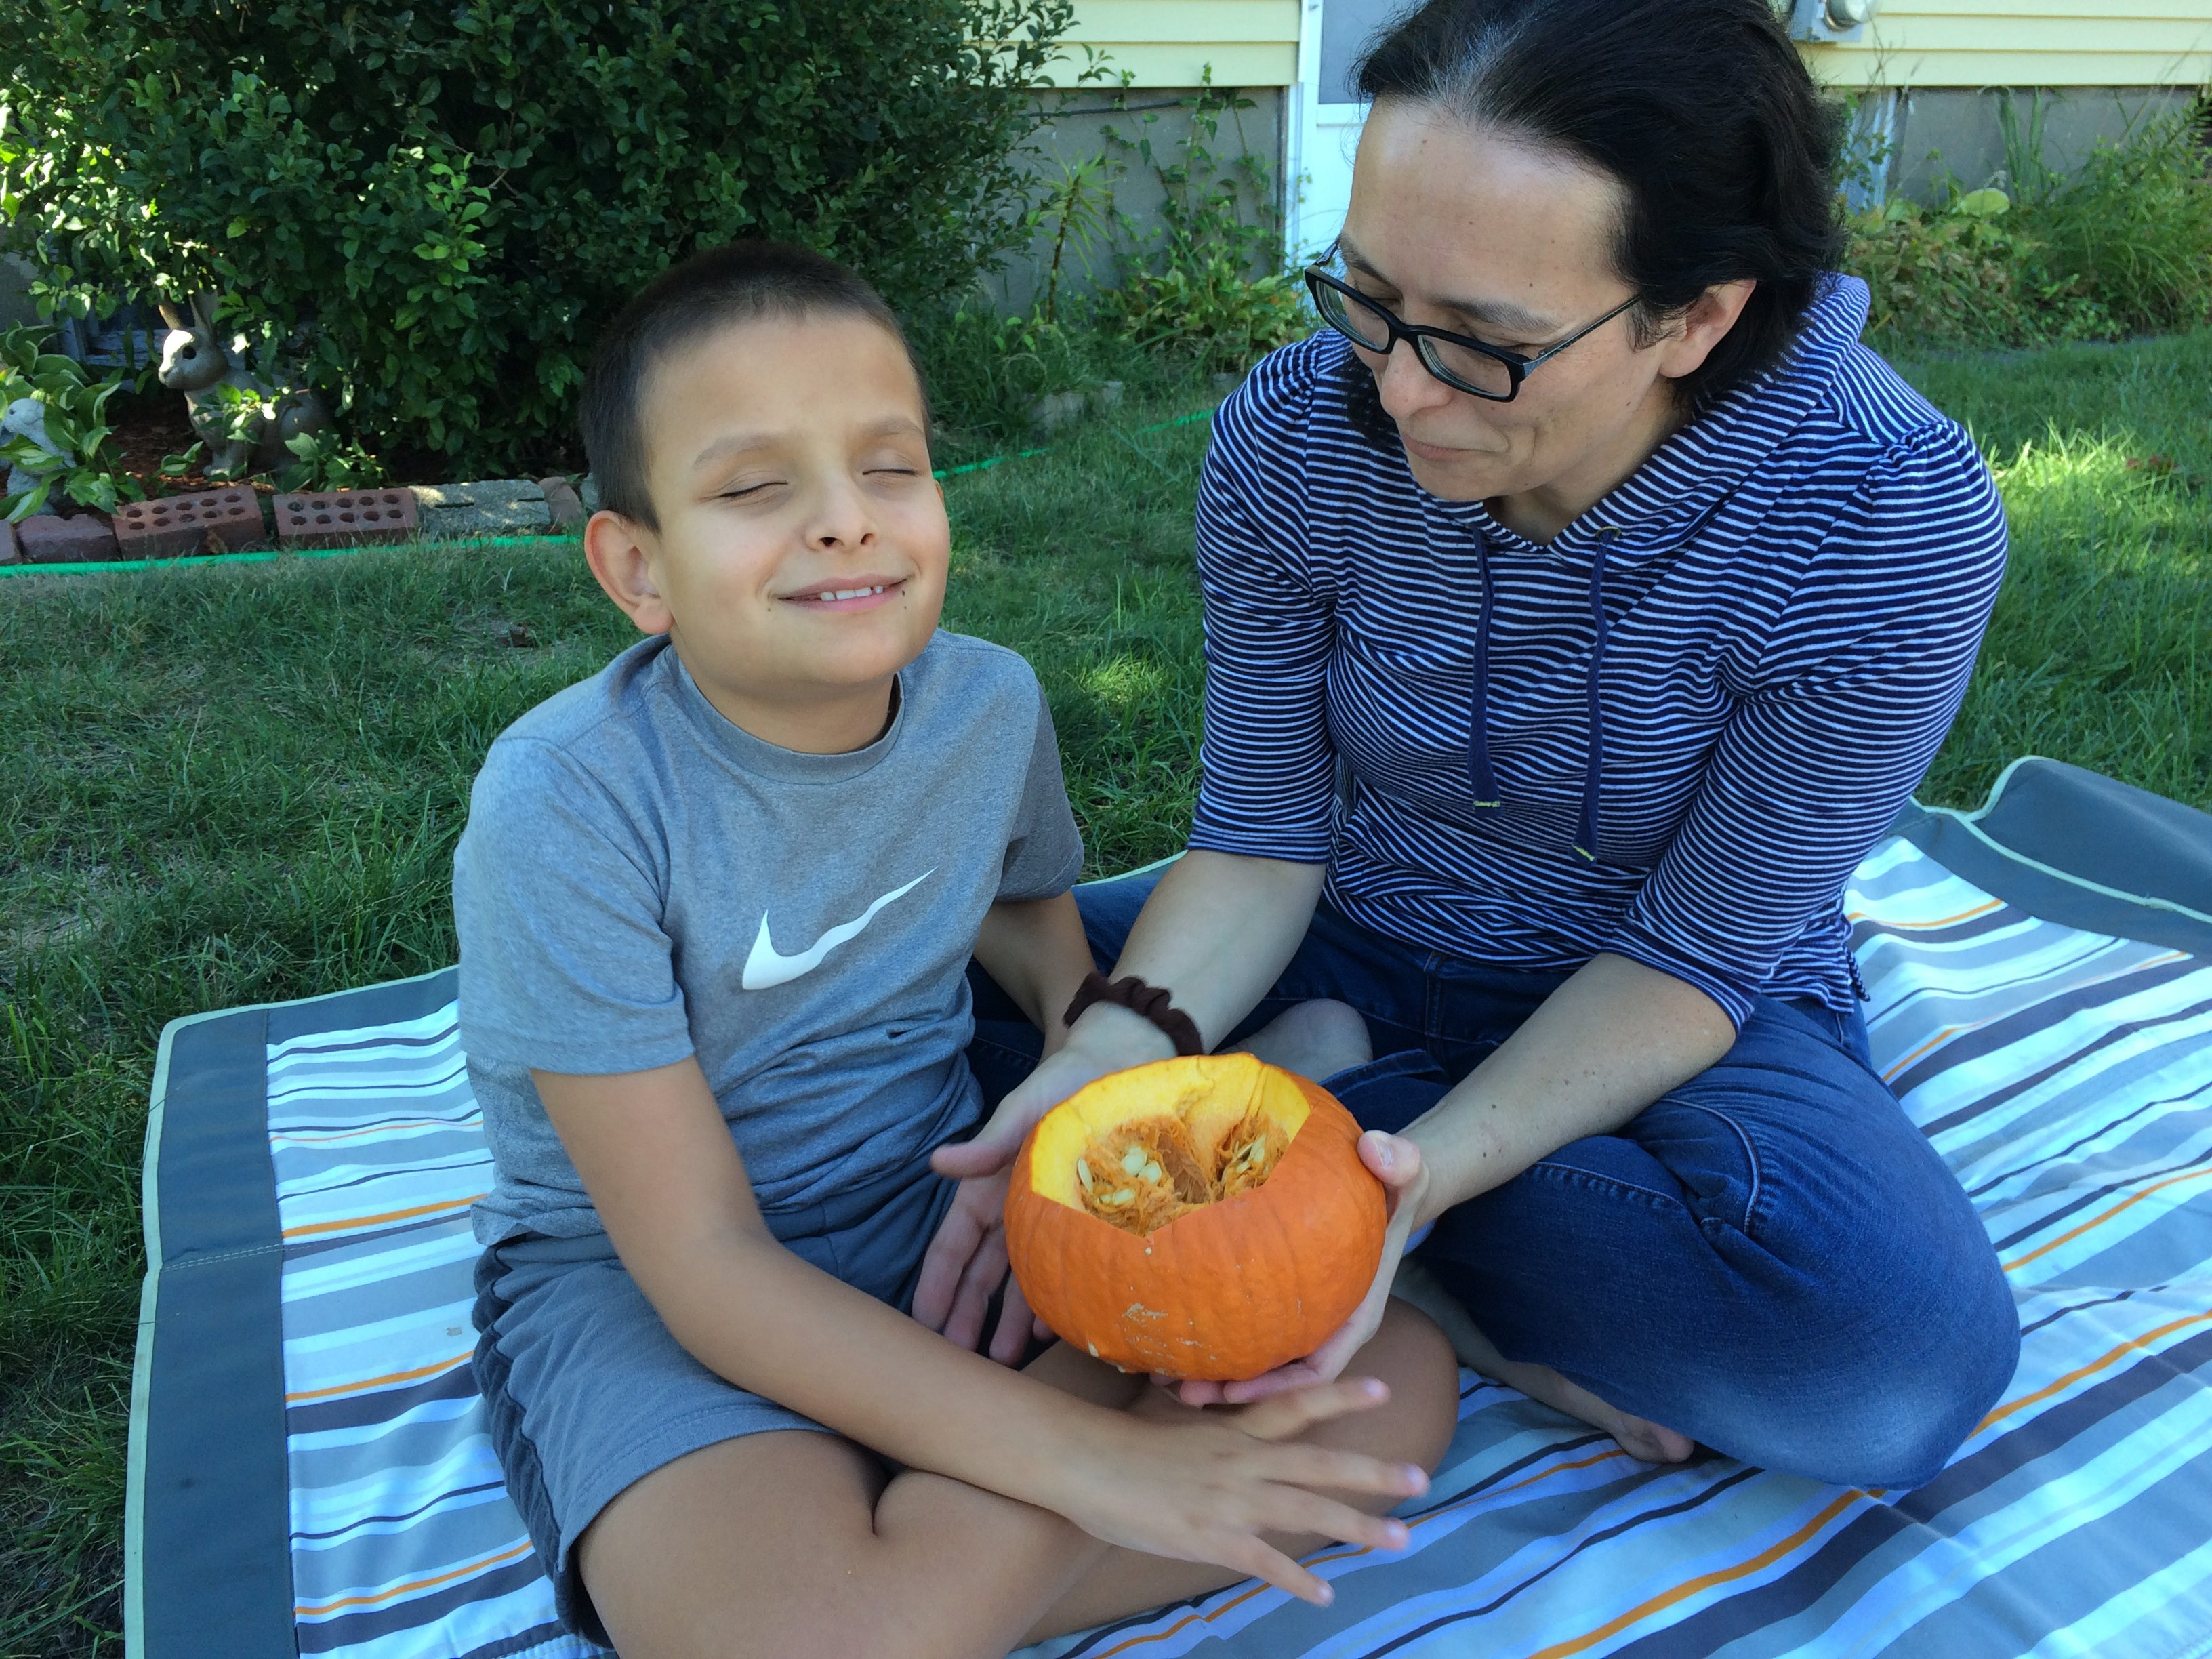 smiling boy holding a pumpkin cut open